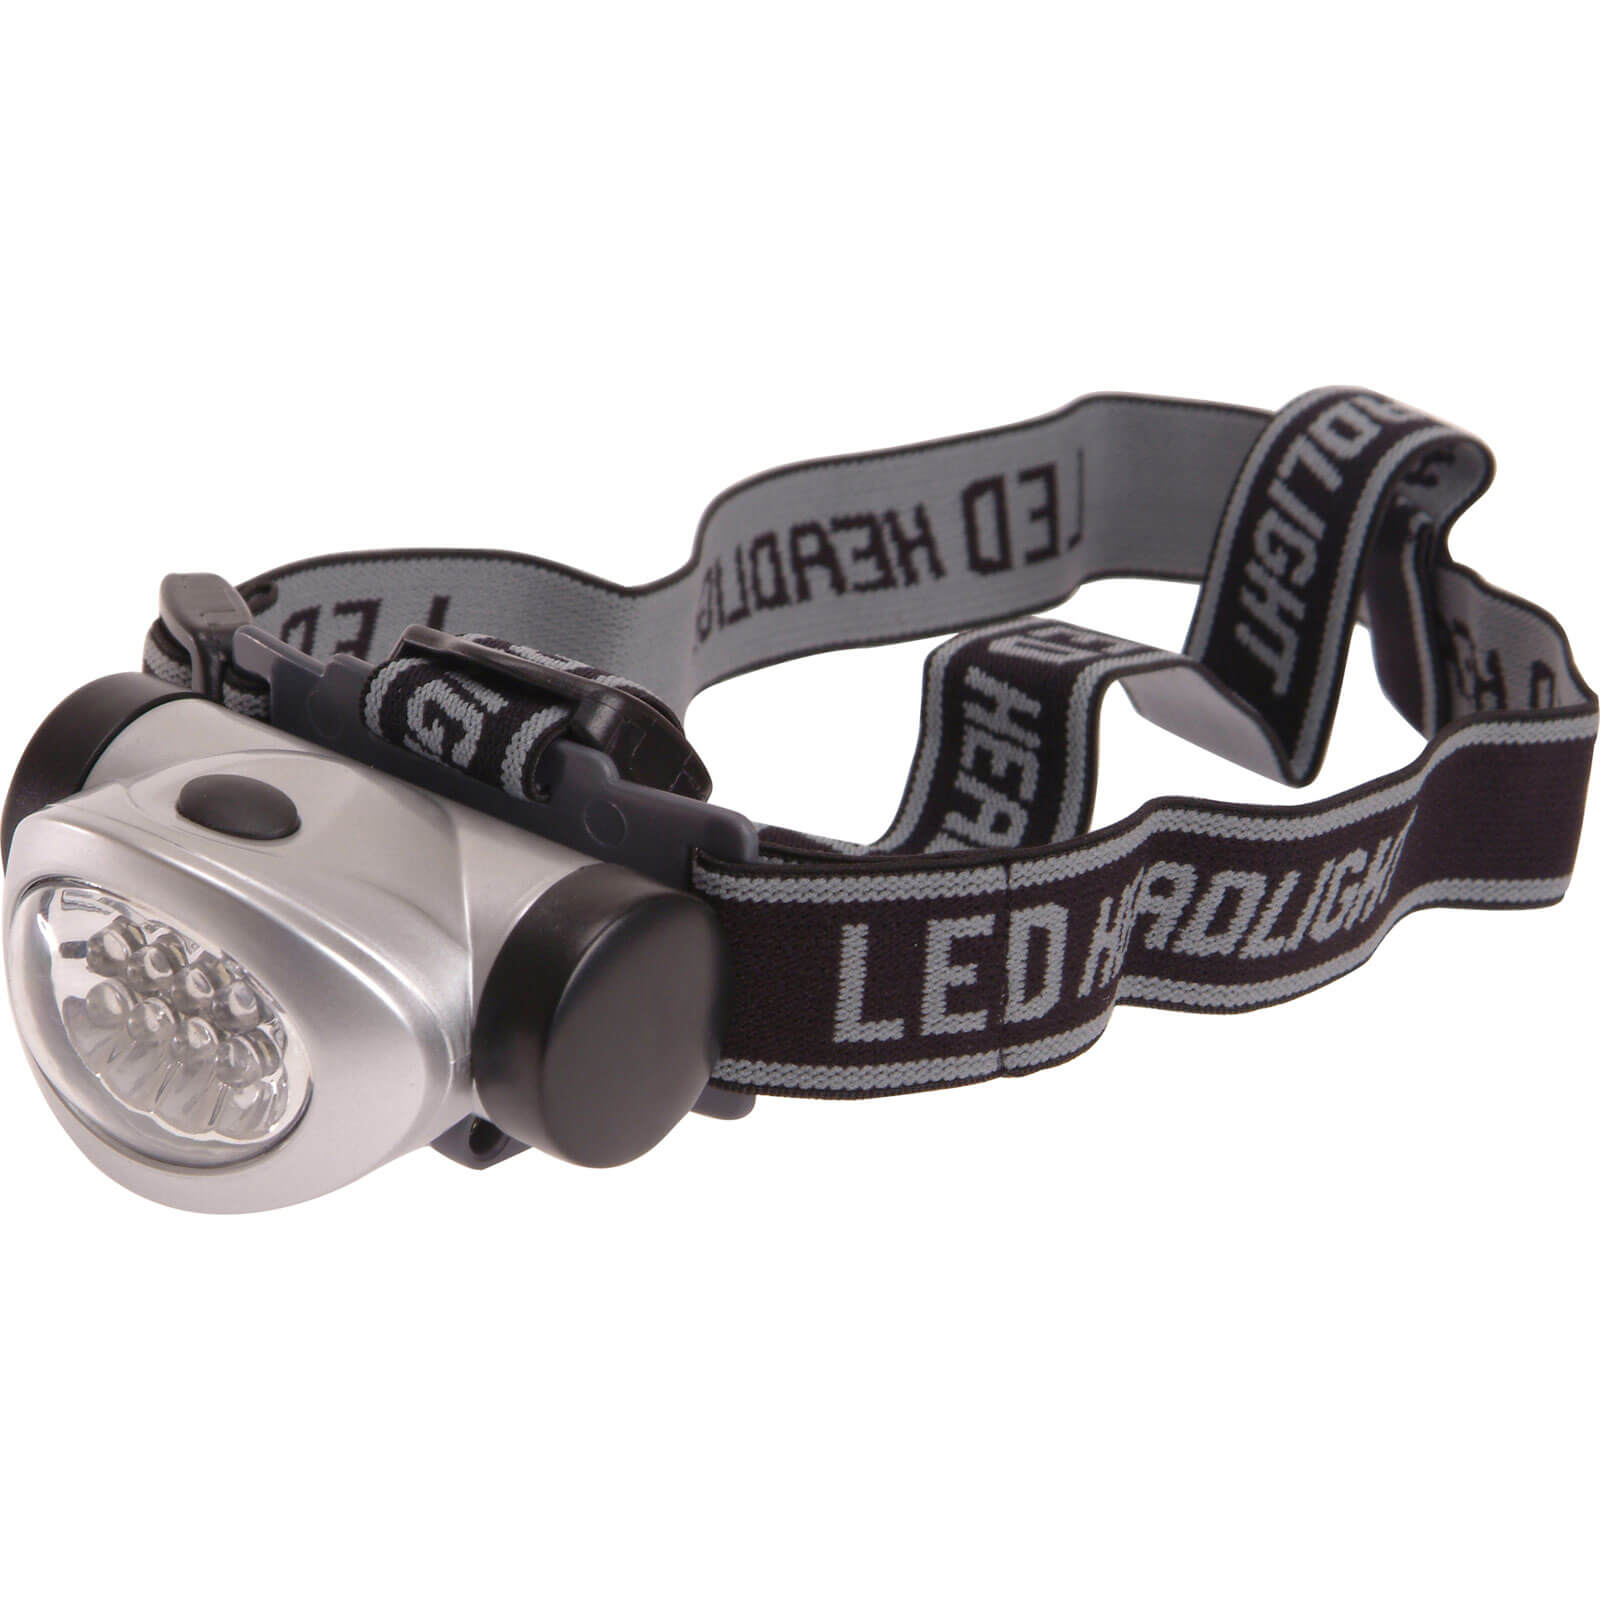 Lighthouse 8 LED Head Torch 3 Function Silver